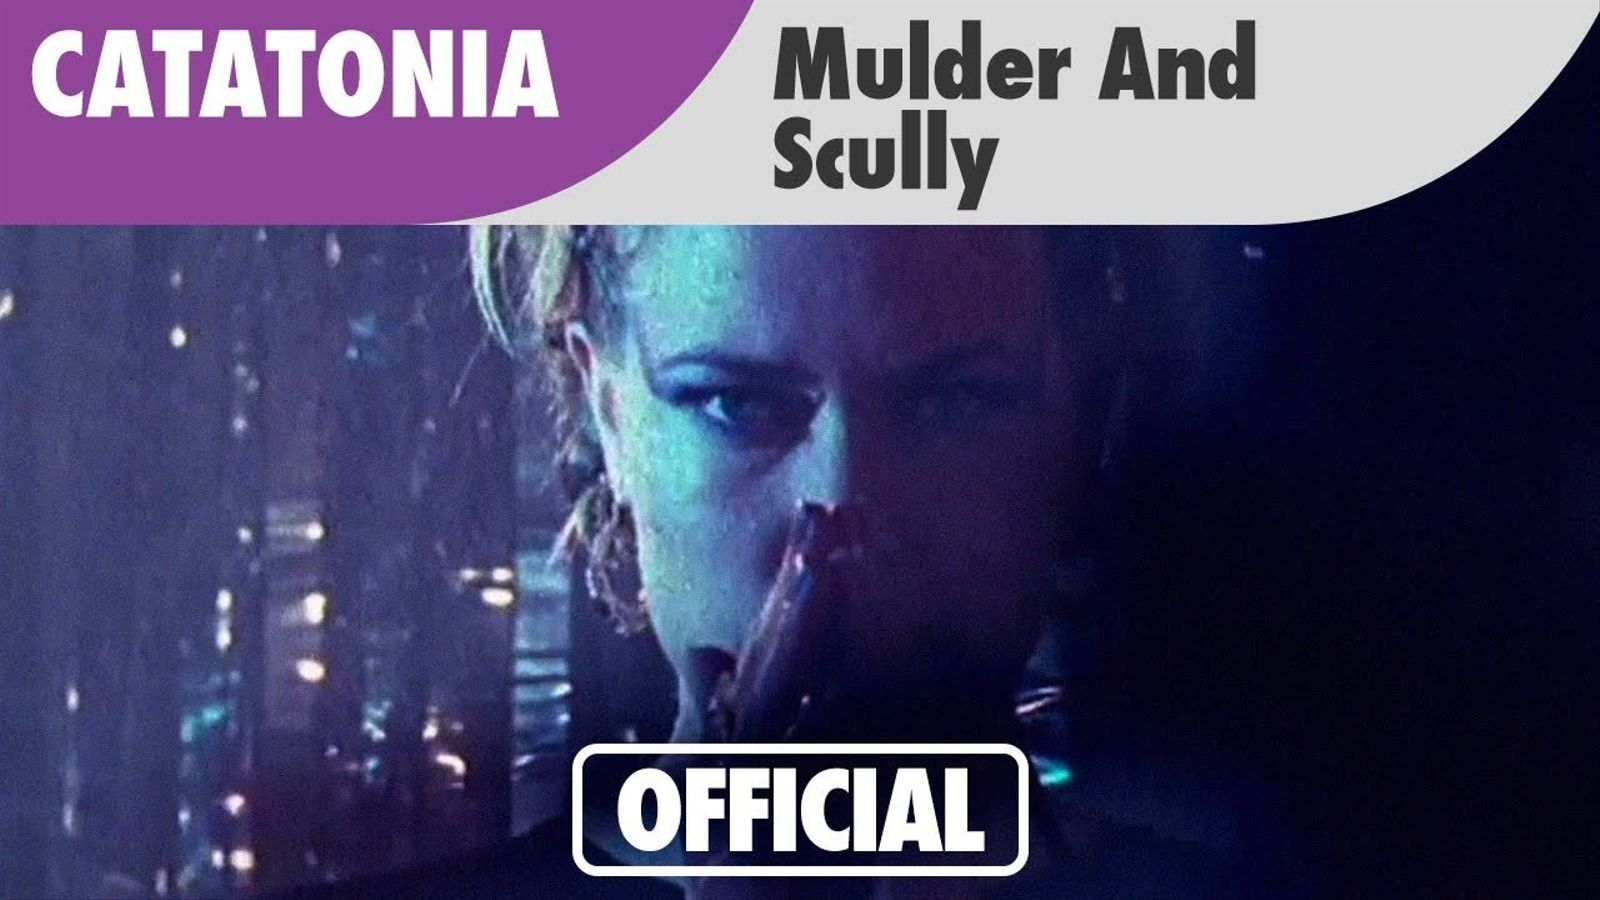 'Mulder & Scully', de Catatonia